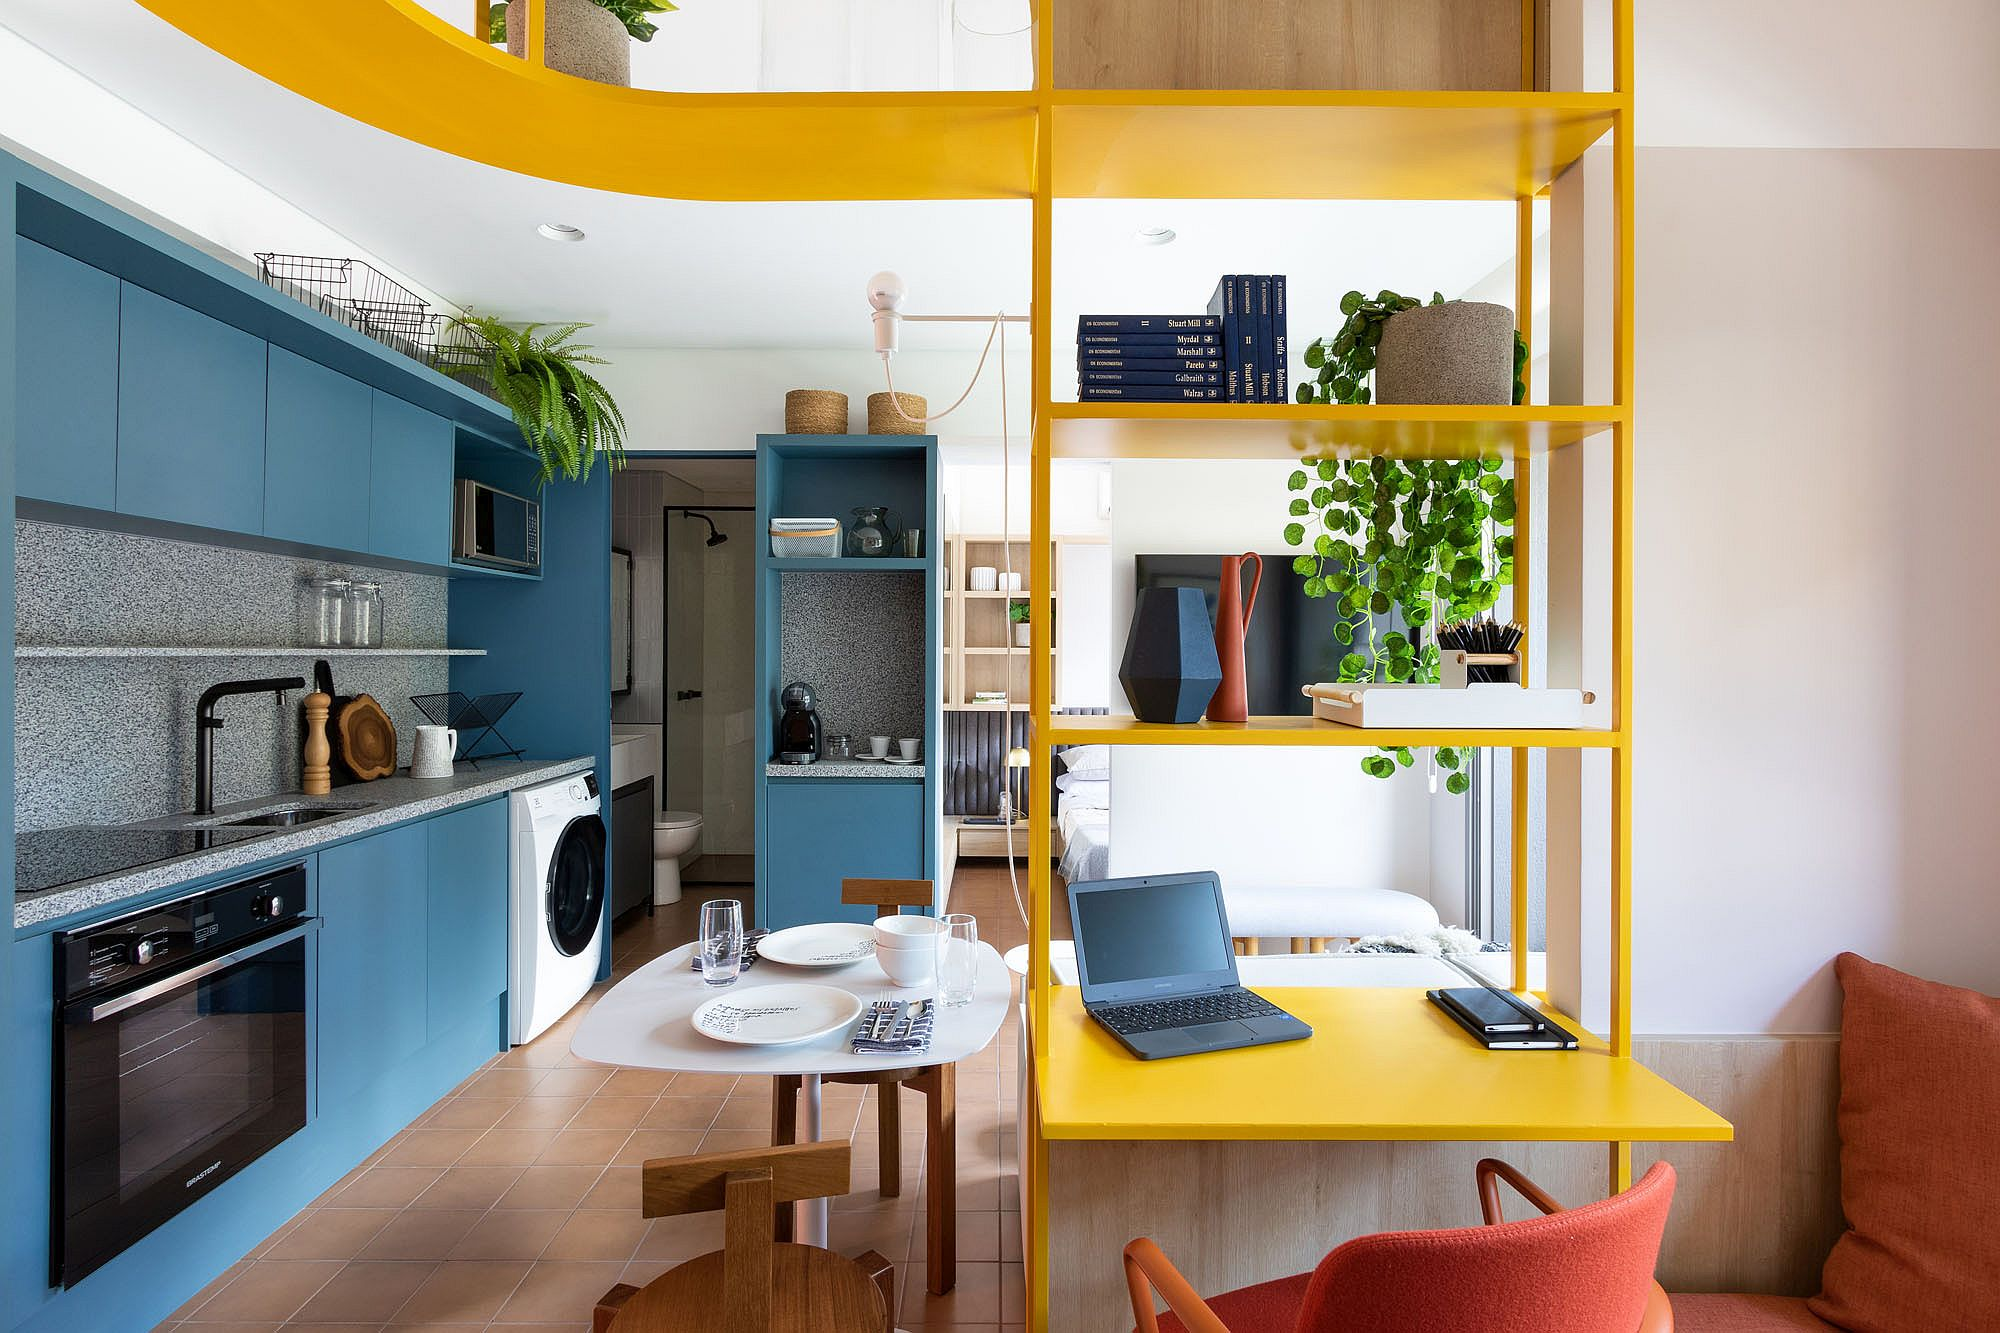 Interior of La Vida Residencial Building designed by Todos Arquitetura in Sao Paulo